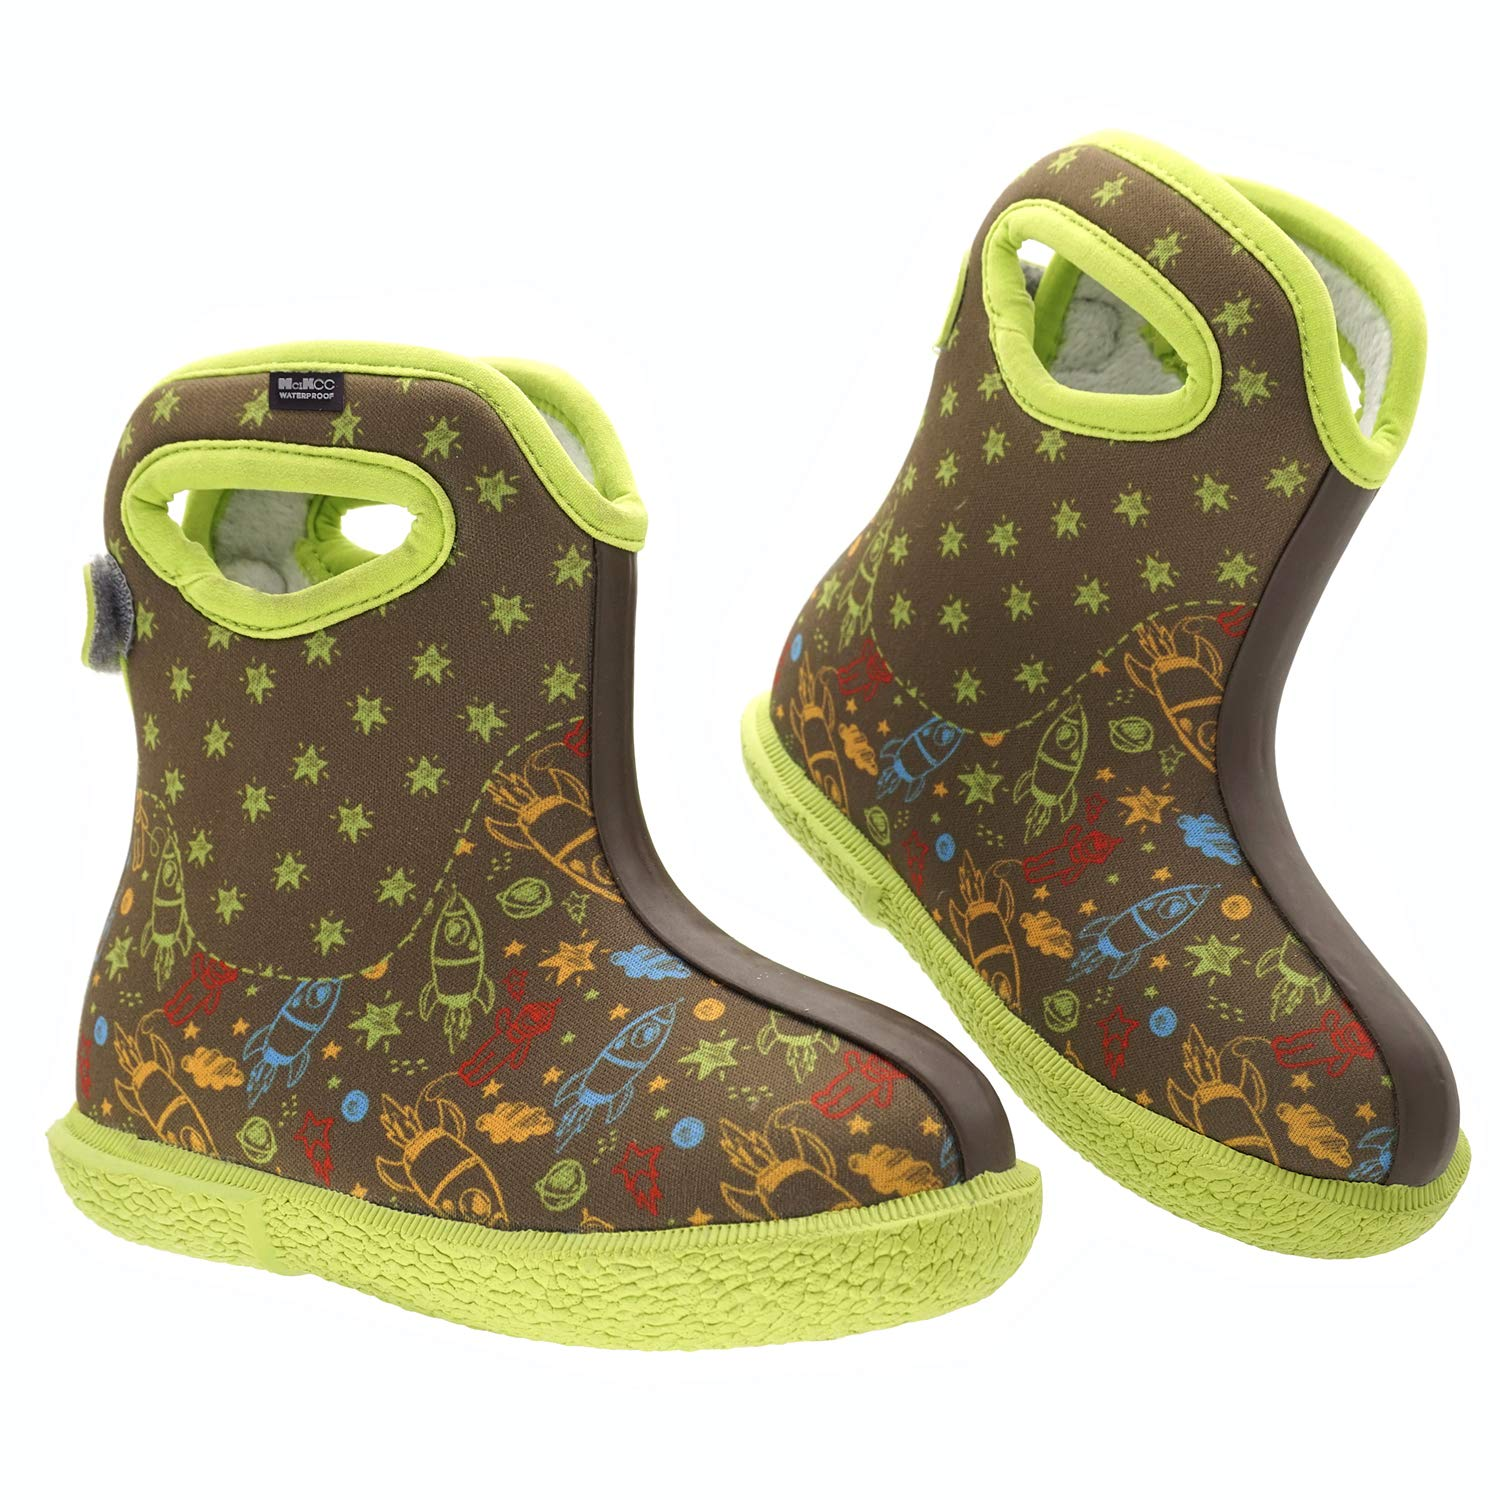 MCIKCC Baby Boots, Waterproof Rainning Boots Lightweight Adjustable Outdoor Boots Multicolor for The Infant, Toddler, Baby, Girls, Boys